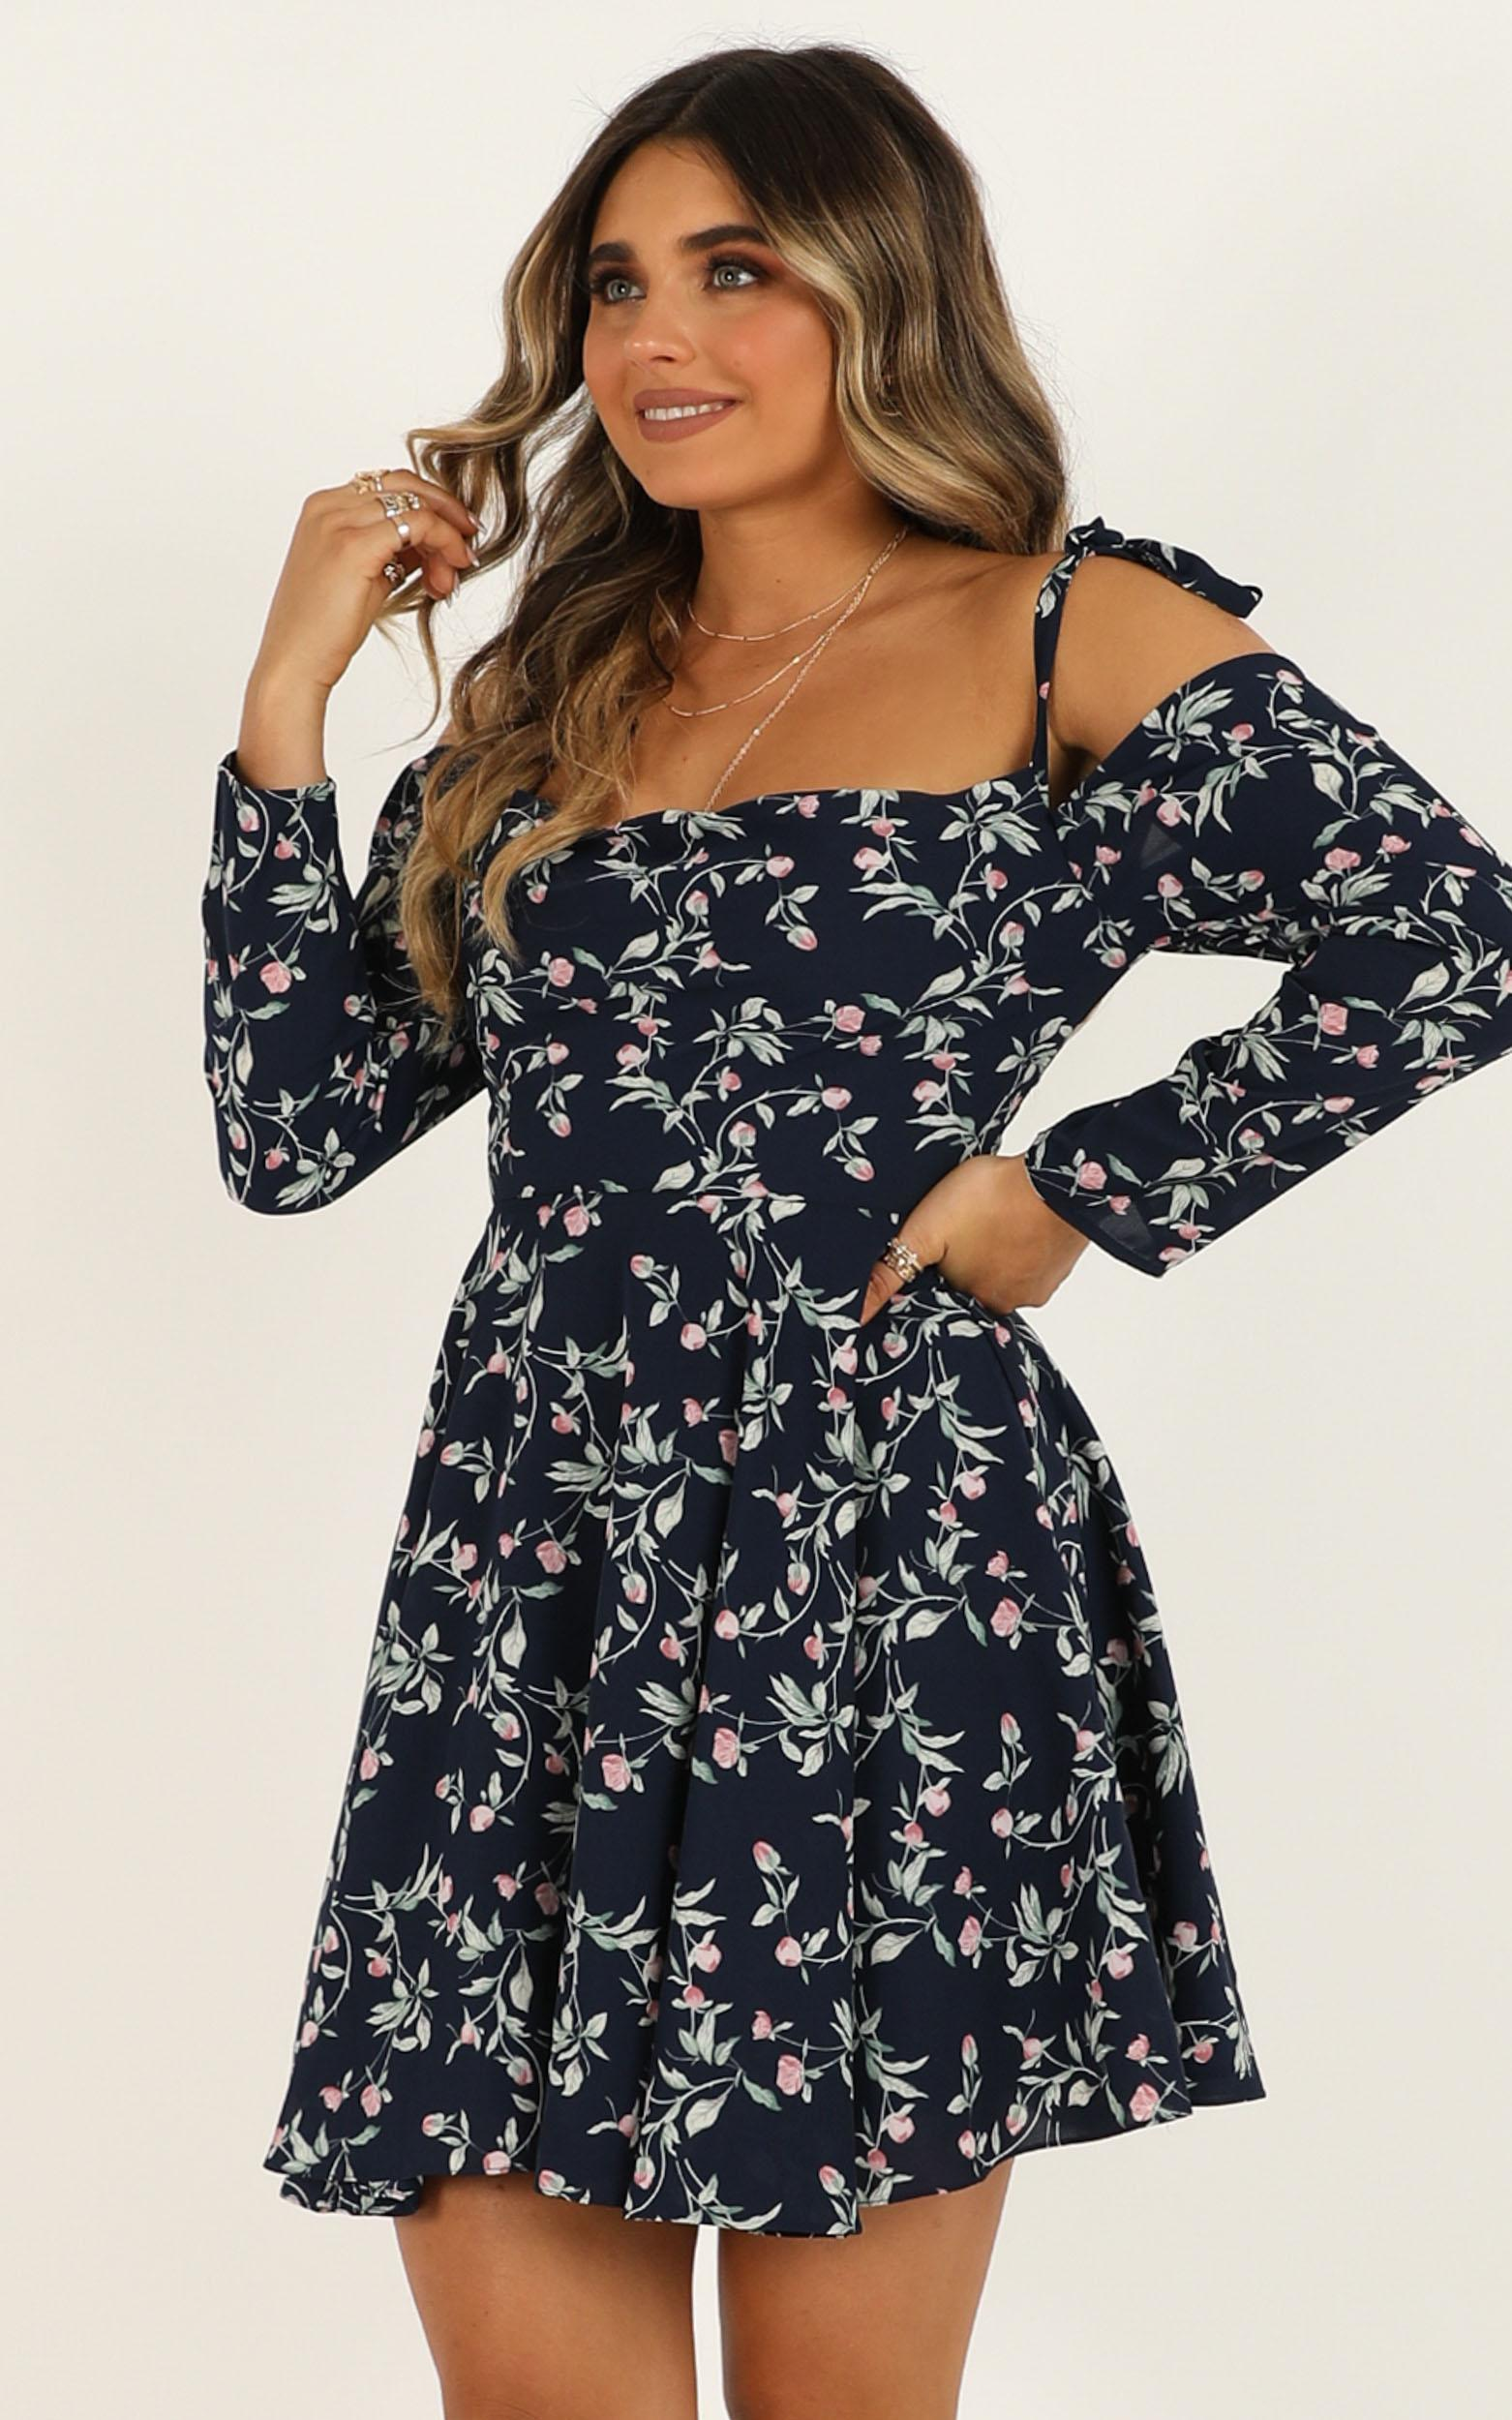 Constant State Dress in navy floral - 16 (XXL), Navy, hi-res image number null